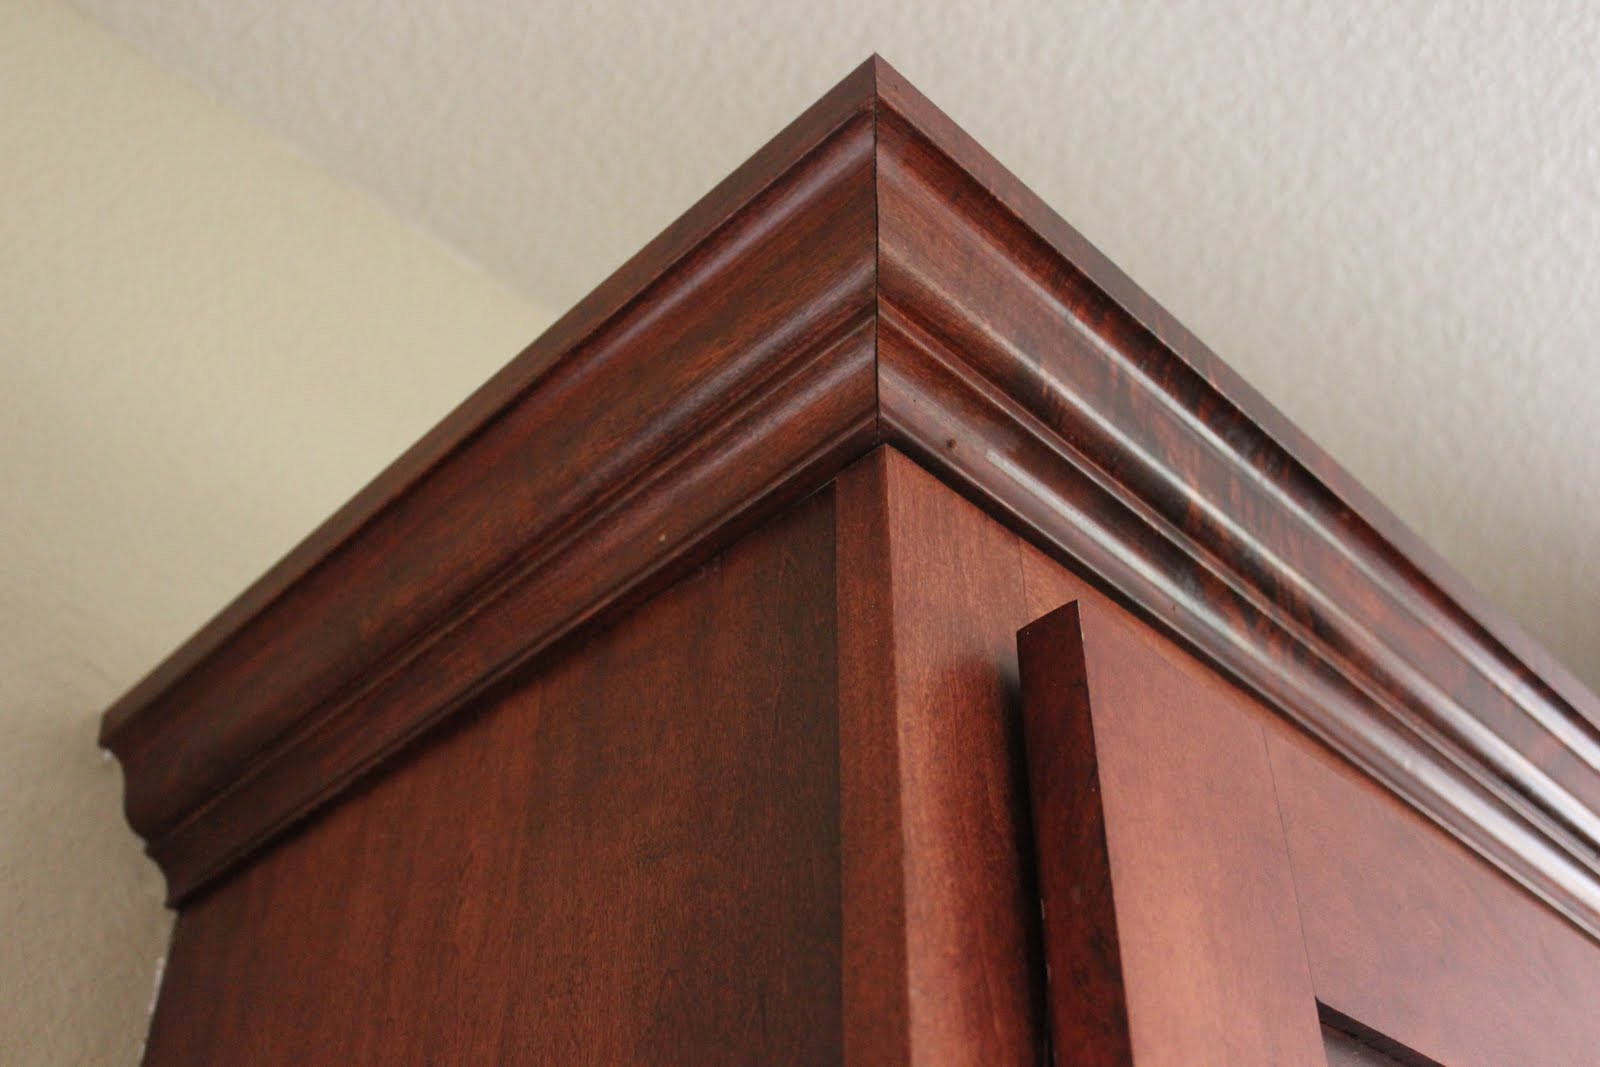 Installing Kitchen Cabinet Crown Molding Amateur Cabinet Maker And Crown Molding Installer Cutandcrown